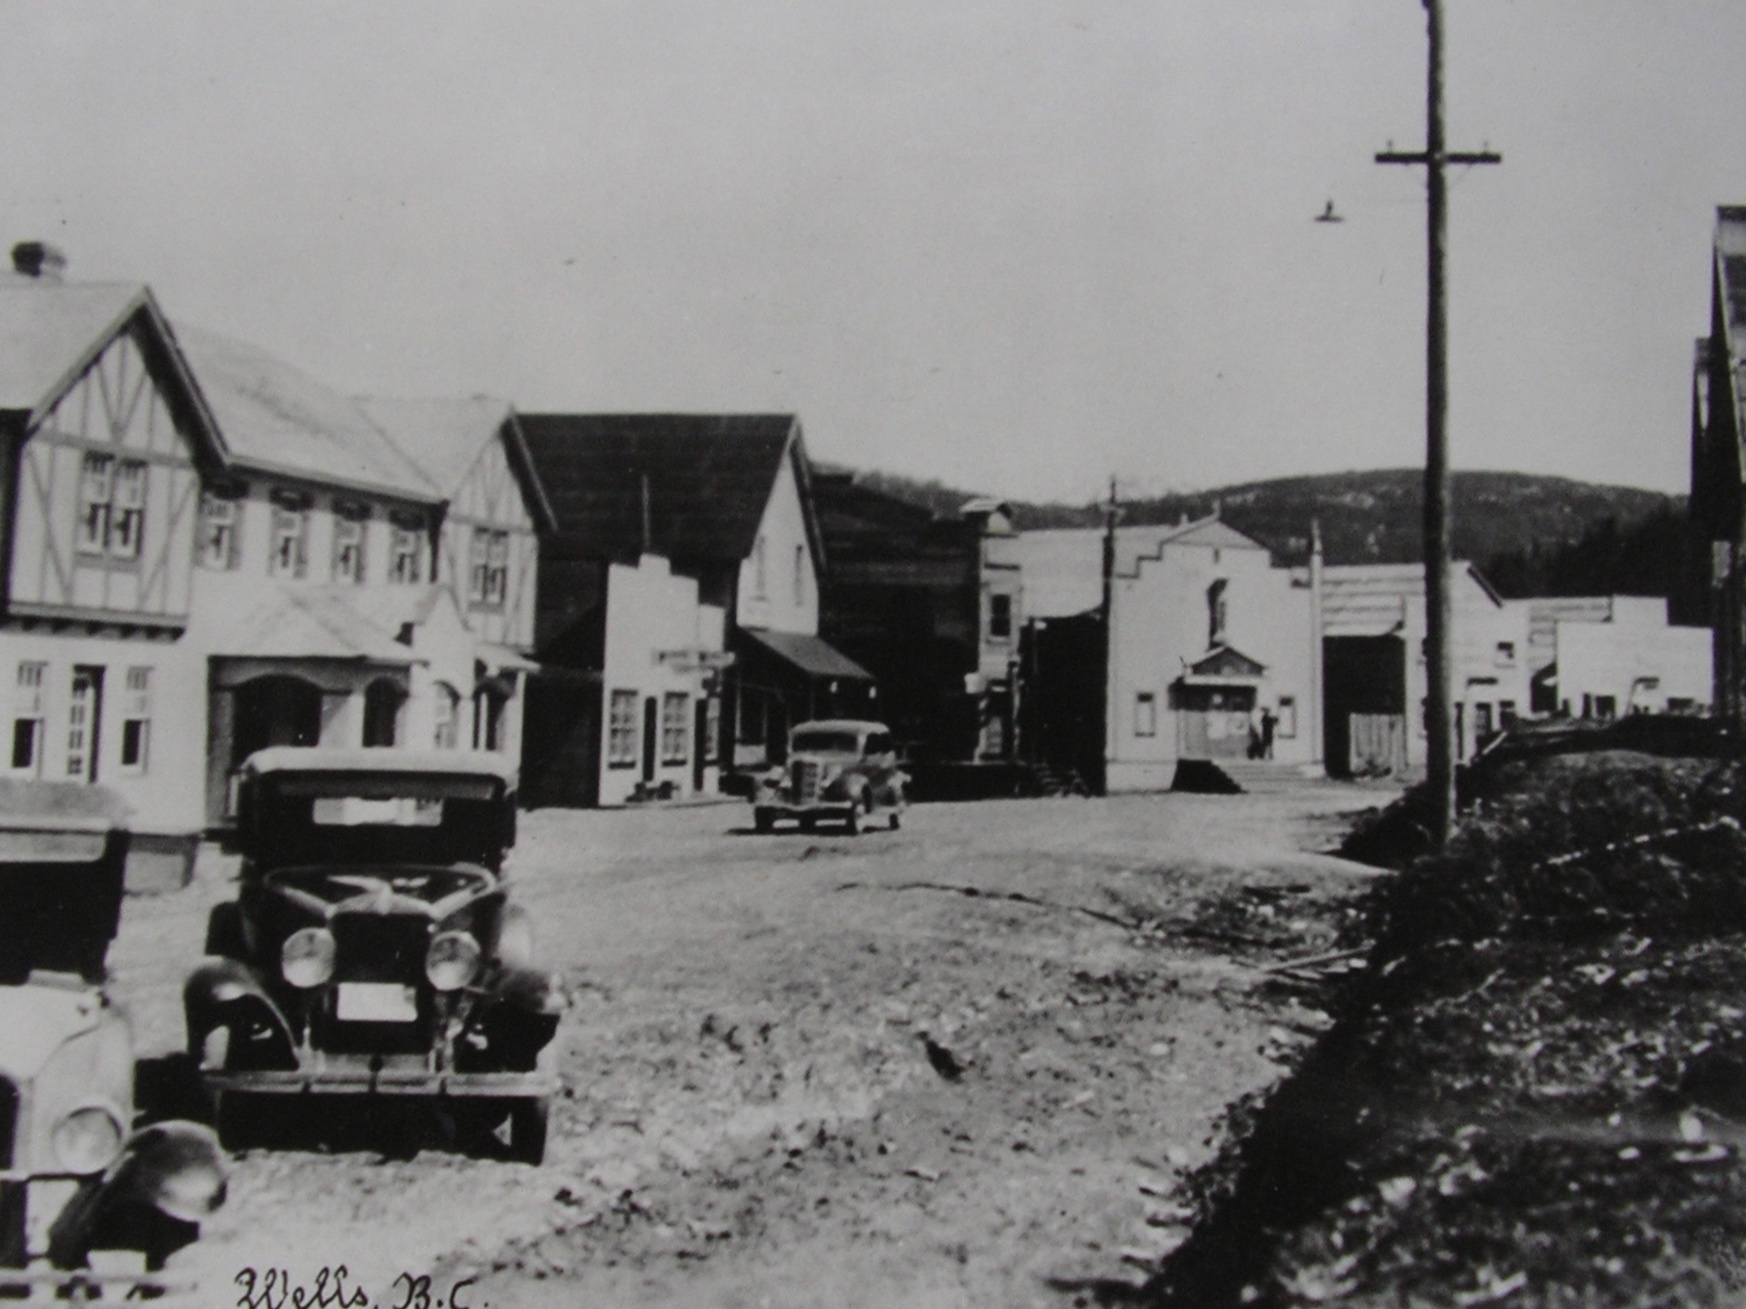 Pooley Street, Wells, BC, 1930s